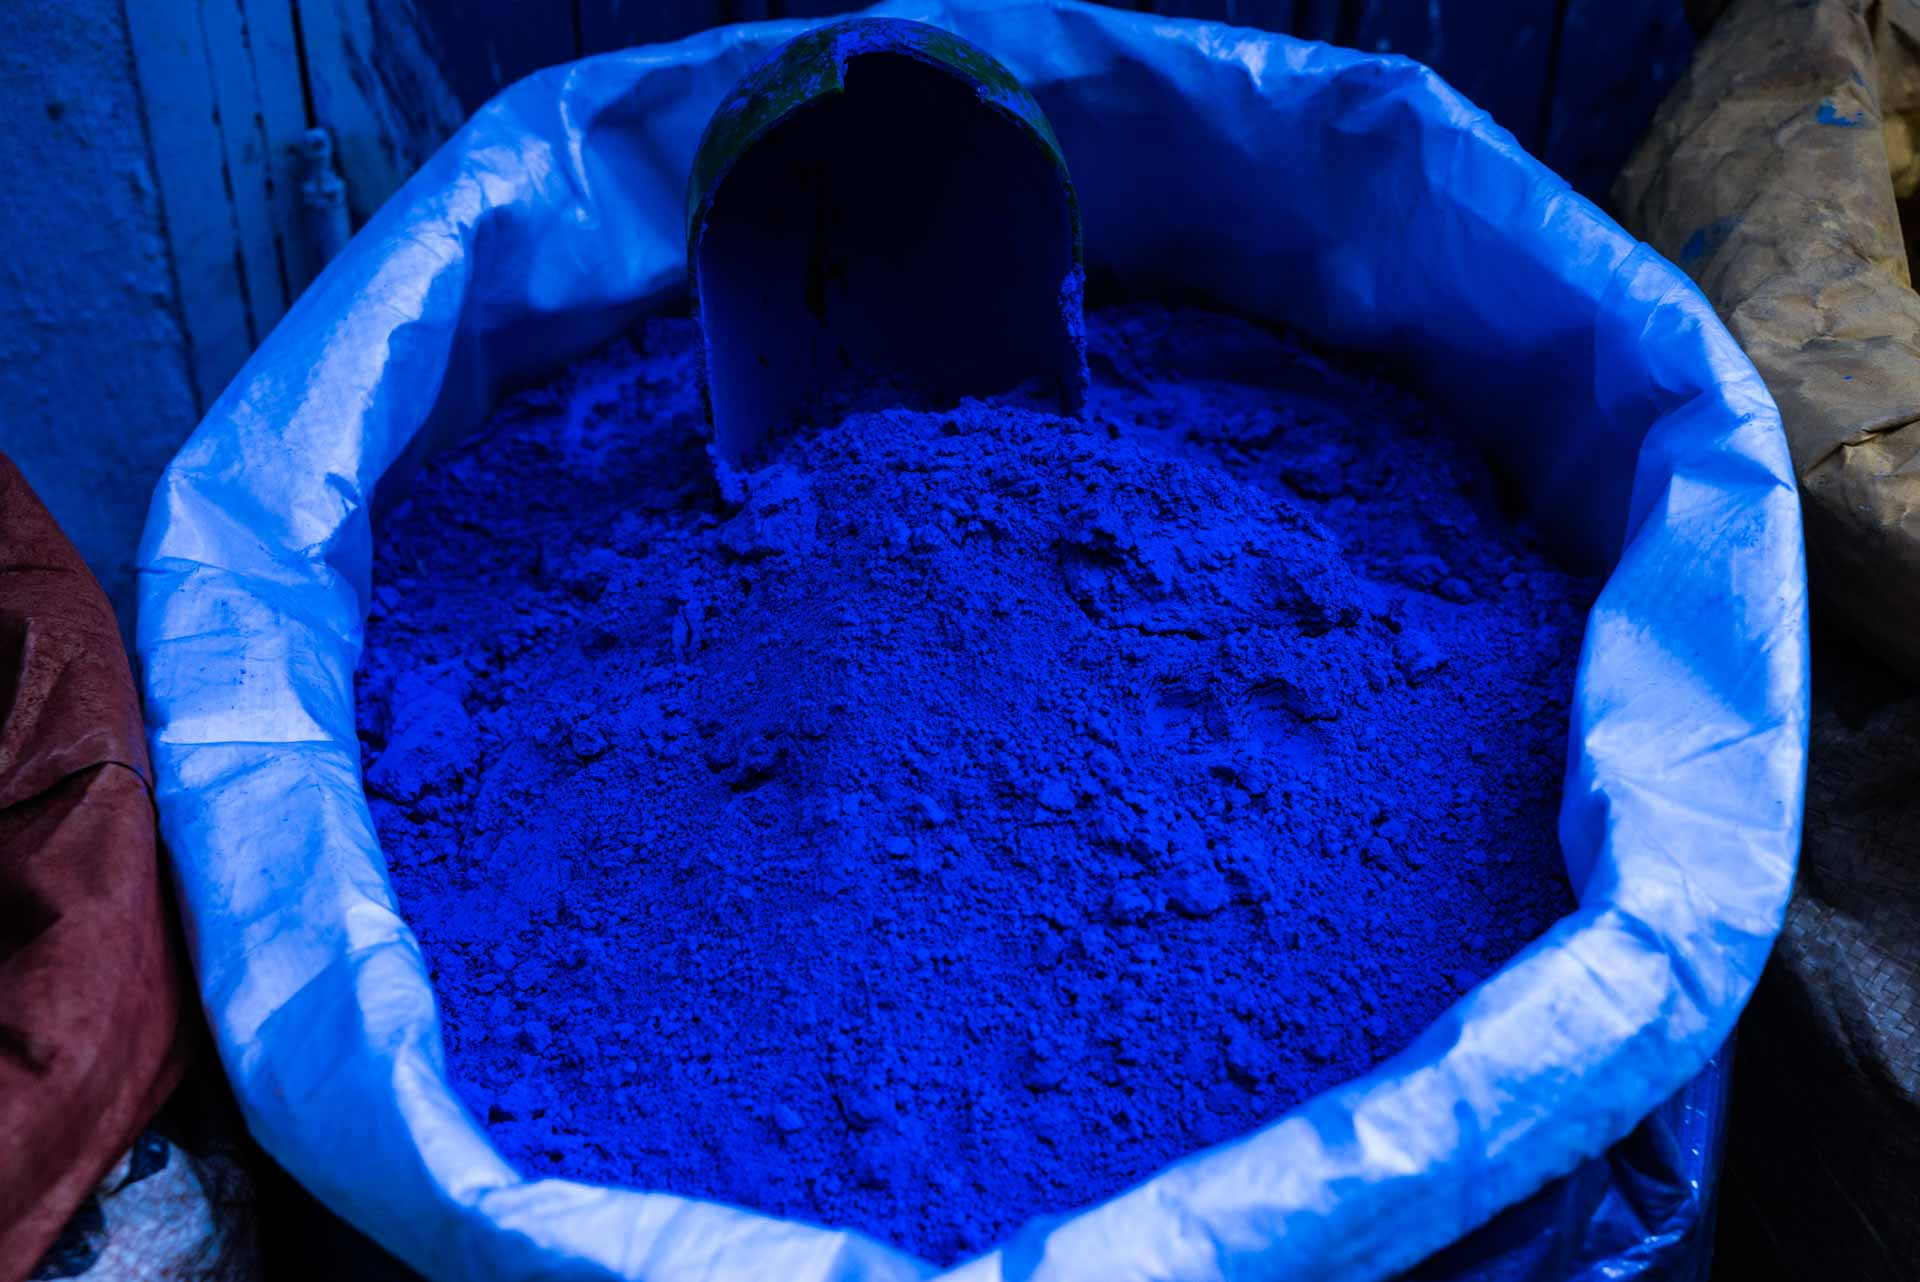 Morocco Chefchaouen blue powder